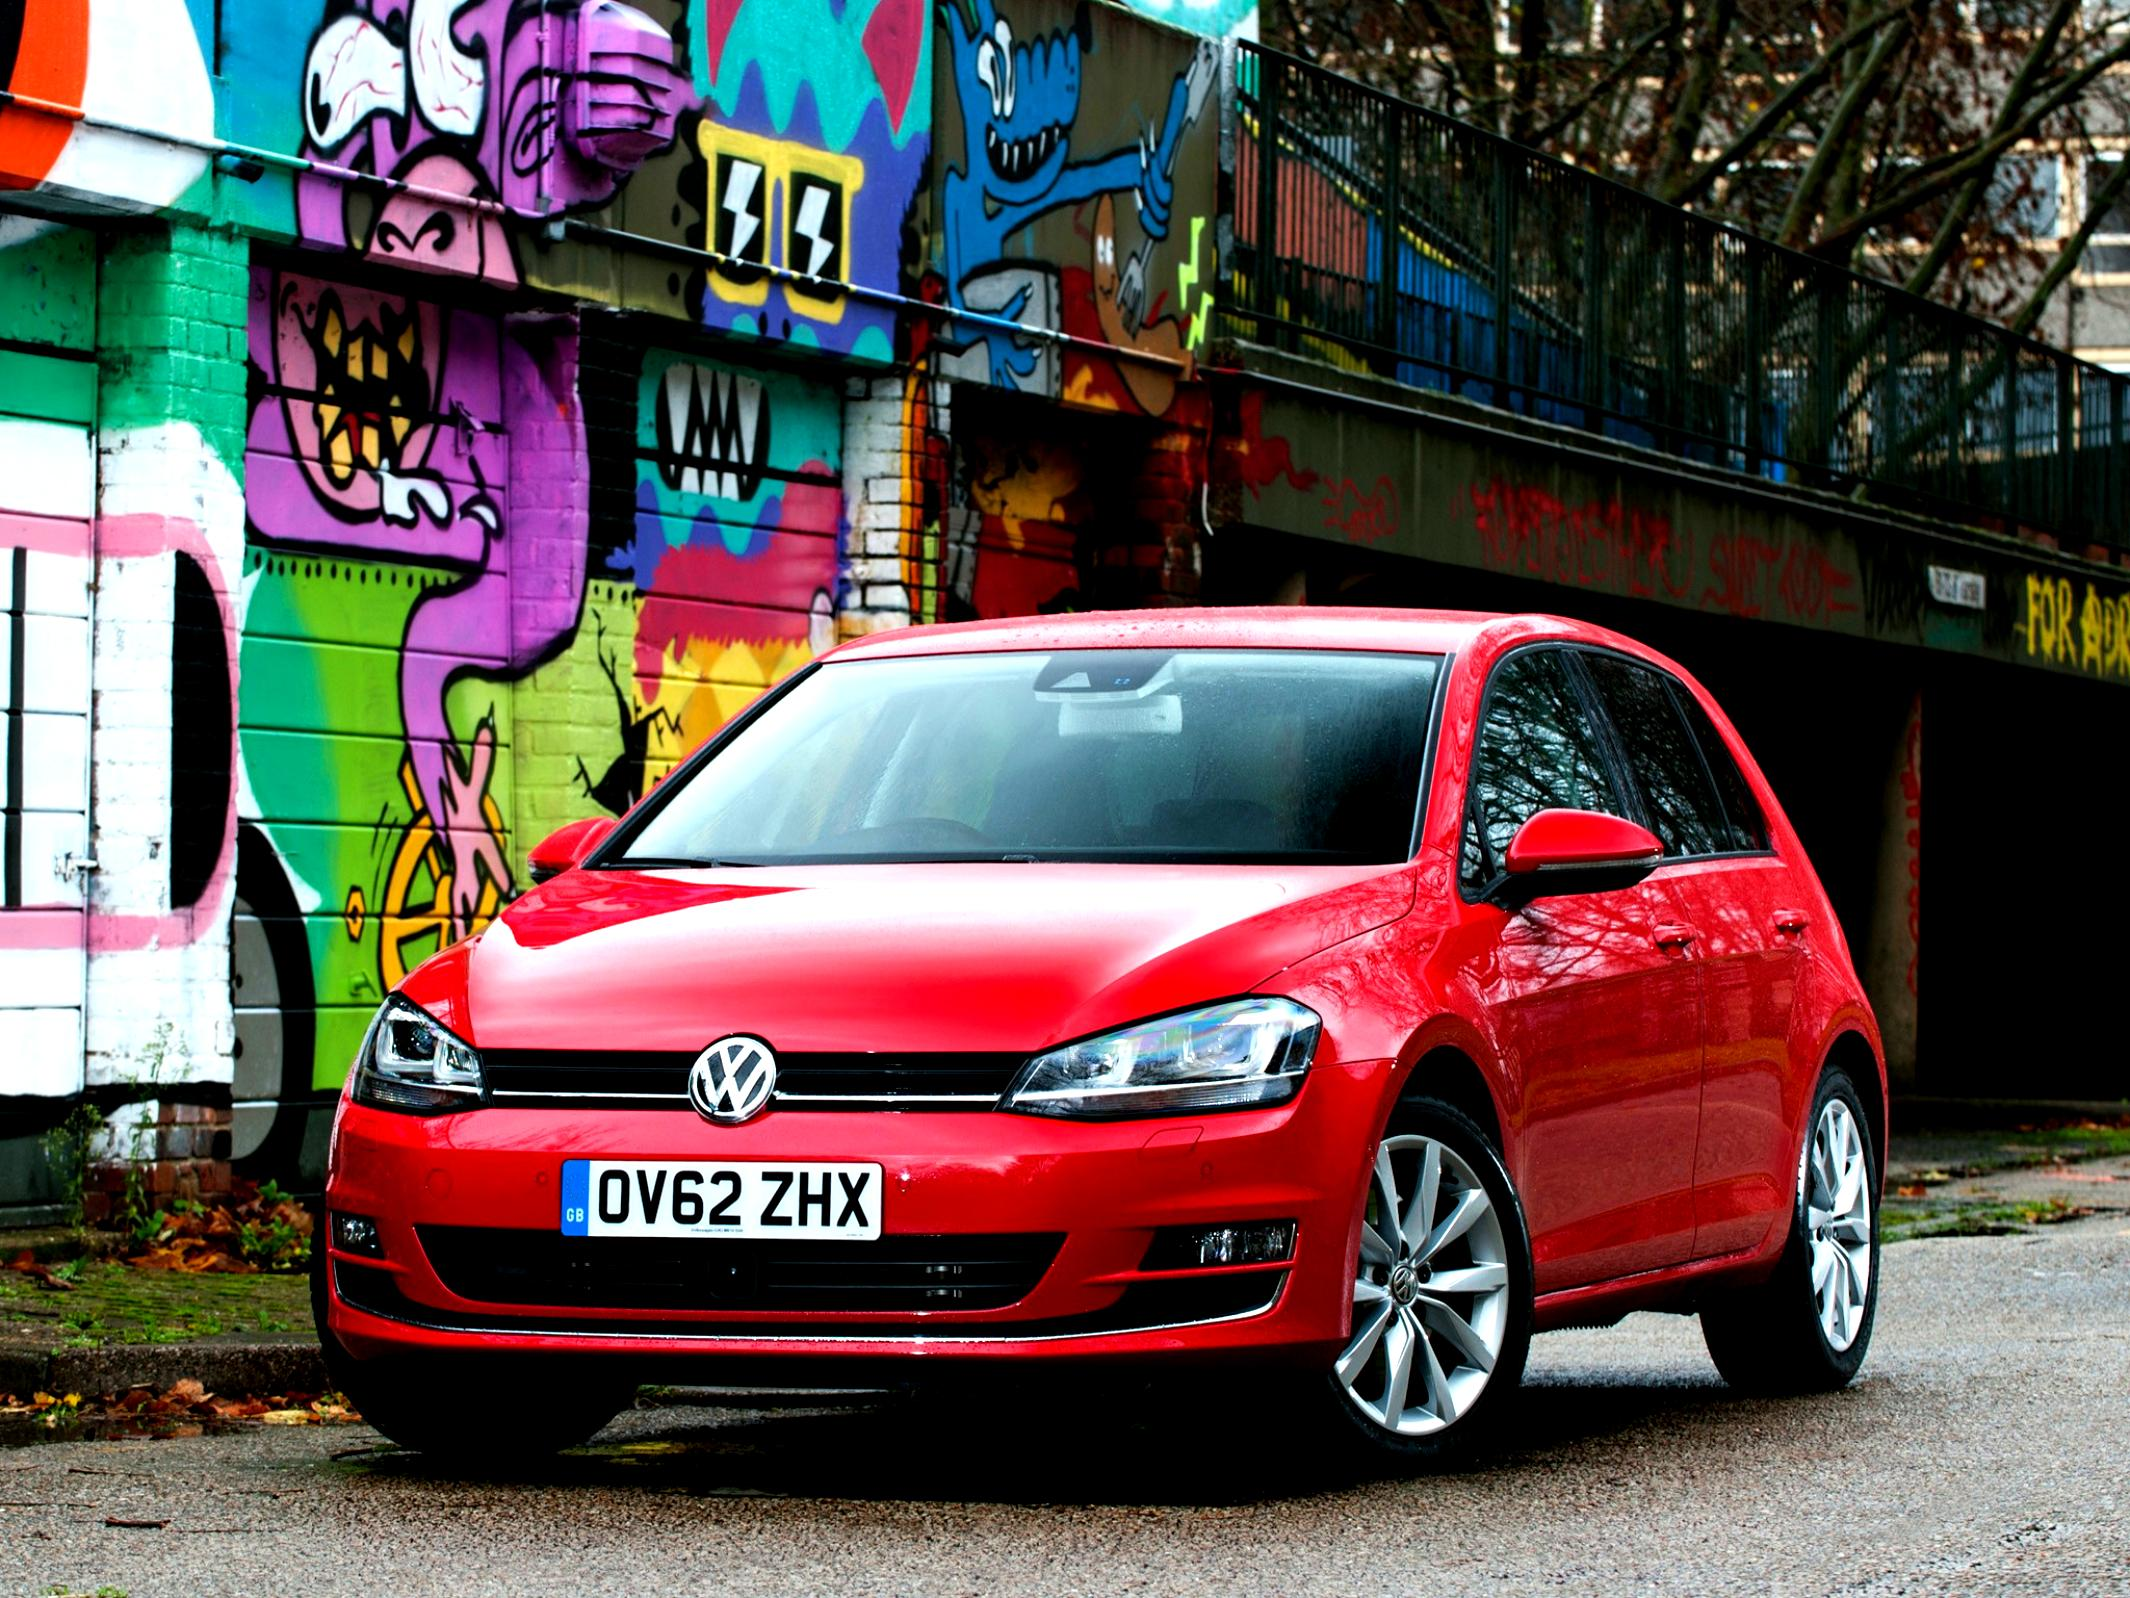 Volkswagen Golf VII 5 Doors 2012 #68